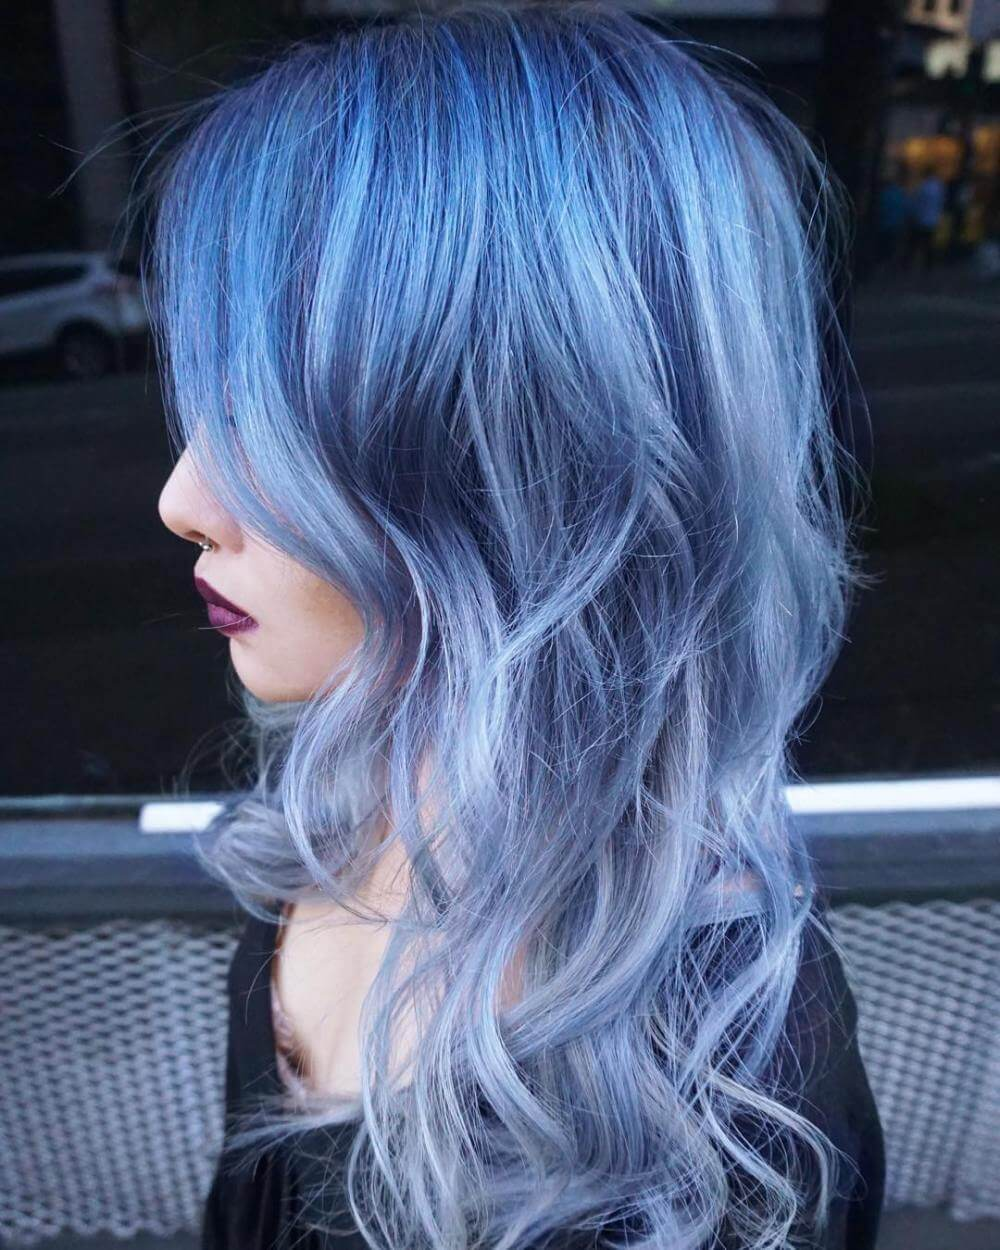 35 Cotton Candy Hair Styles That Look So Good You'll Want ...